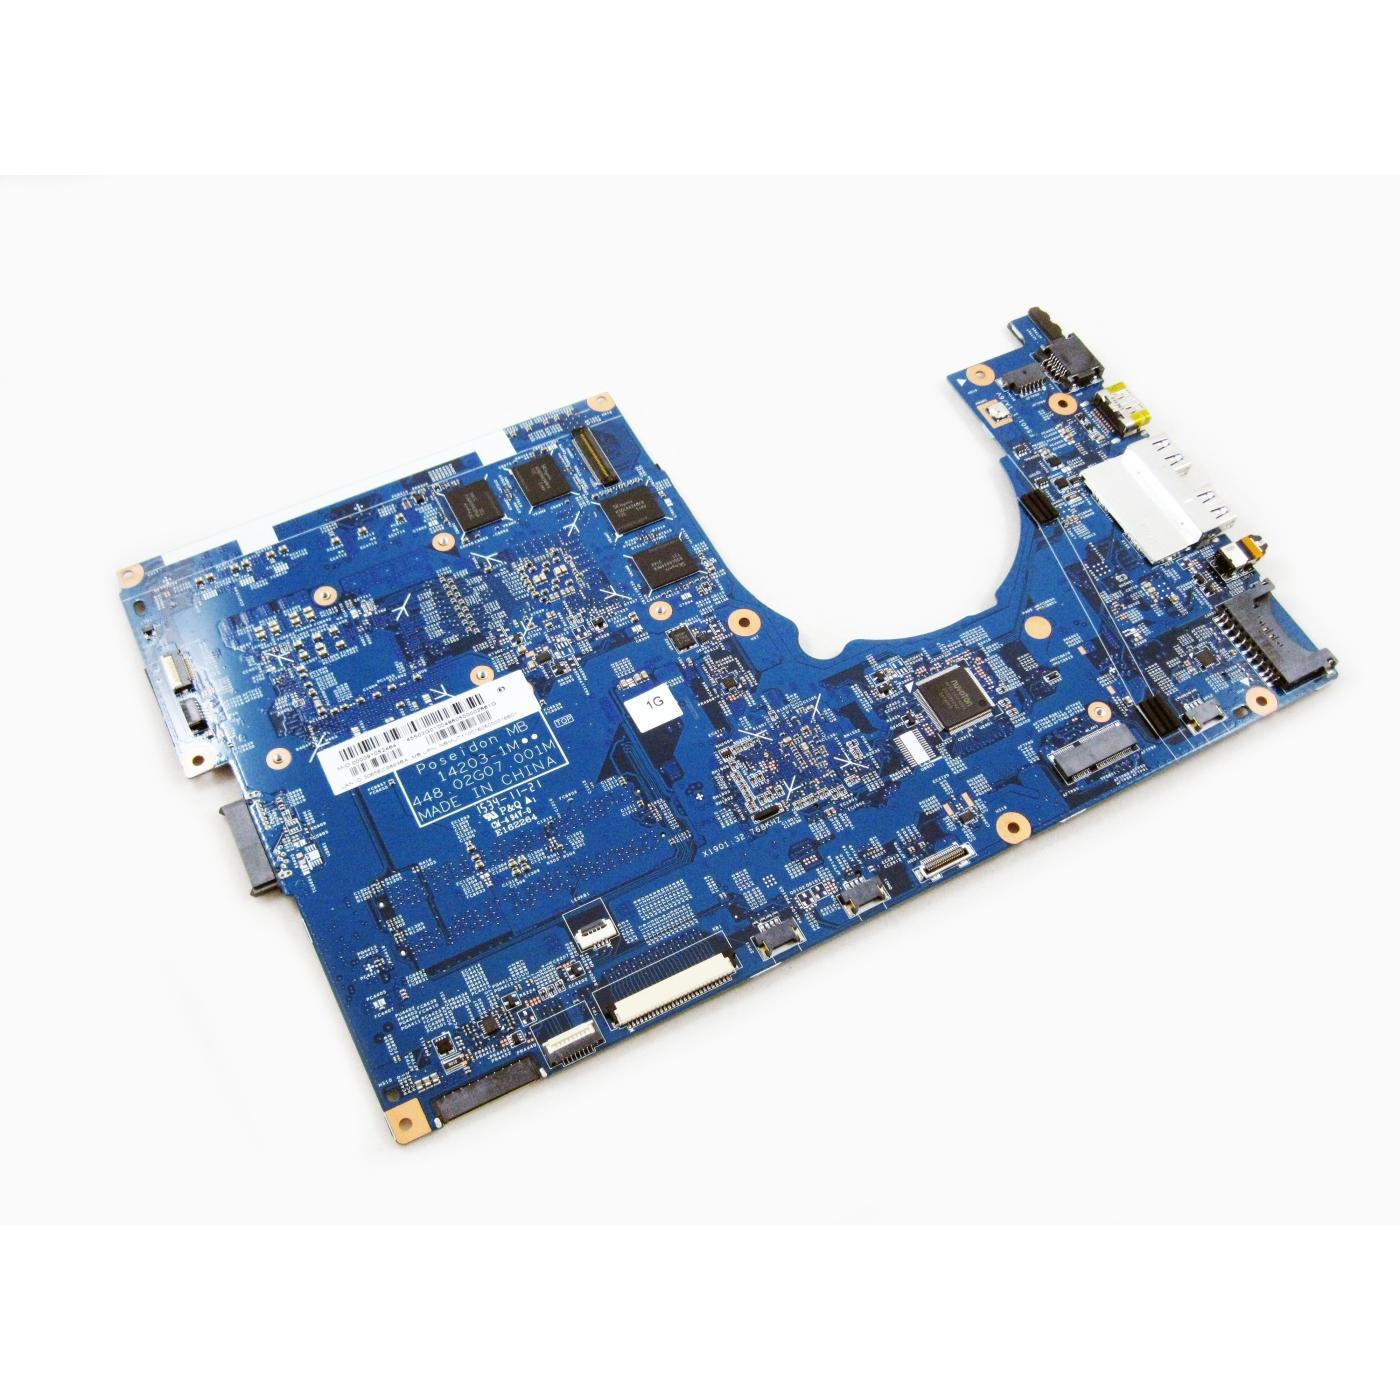 Acer NB.MUT11.001 Aspire VN7-791G I7-4720 Dis 960M Notebook Motherboard